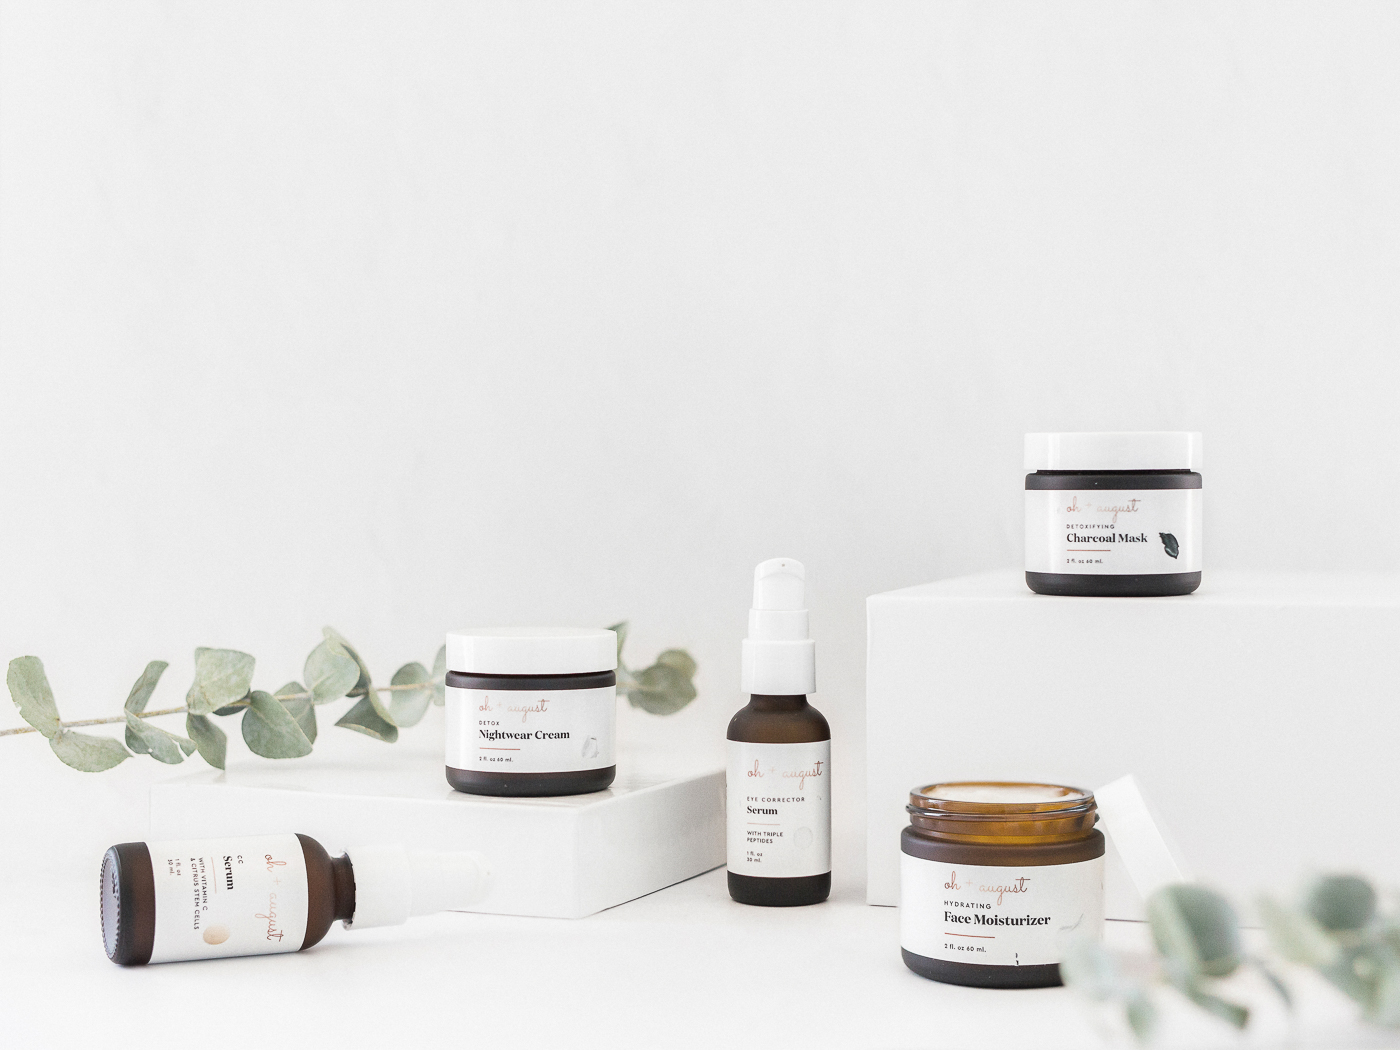 Voyage + Heart - Mail In Product Photography - Product Photography for Skincare Brands - Brand Photography for Natural Skincare Lines - Green Beauty Brands - Oh + August